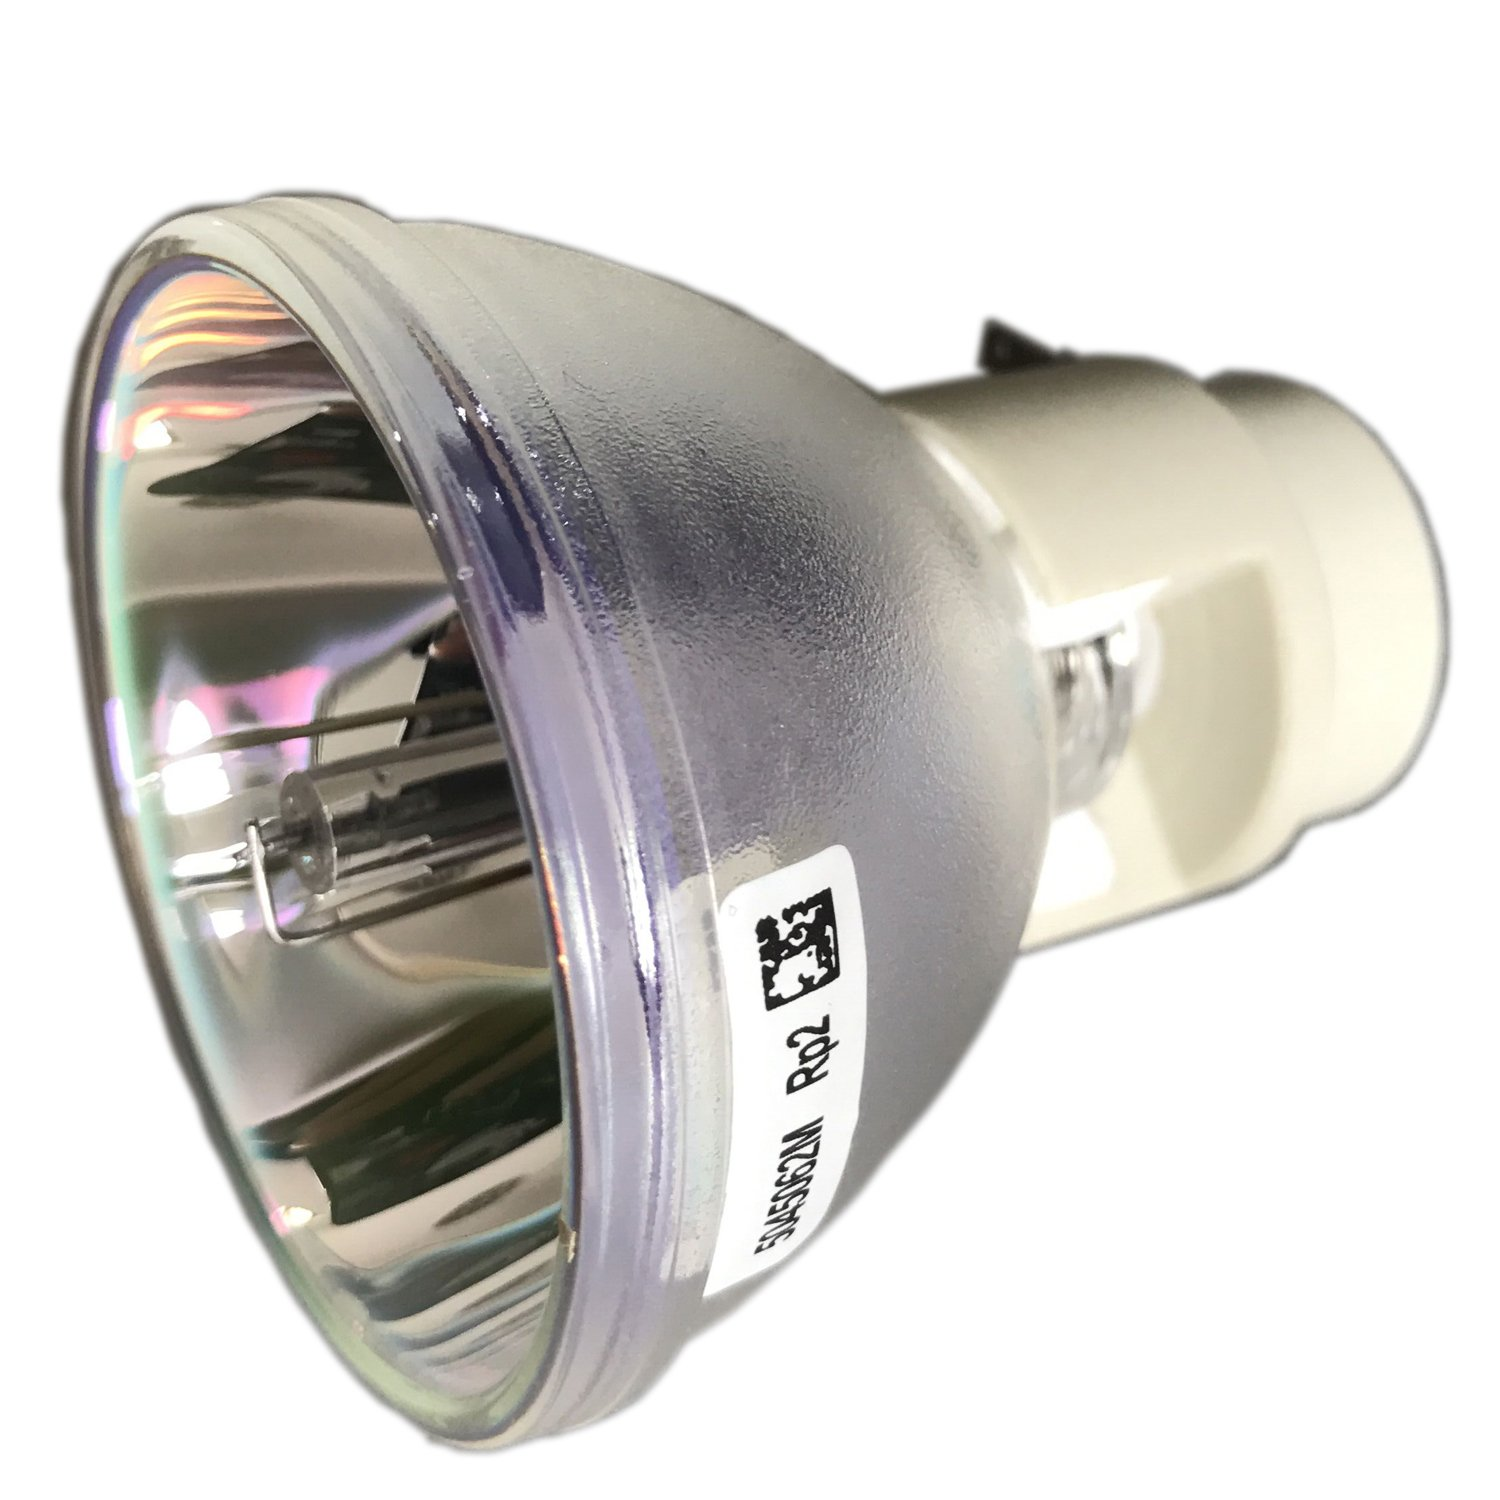 Litance Projector Bare Bulb Replacement for BenQ 5J.JEL05.001, TH670 by Litance (Image #1)